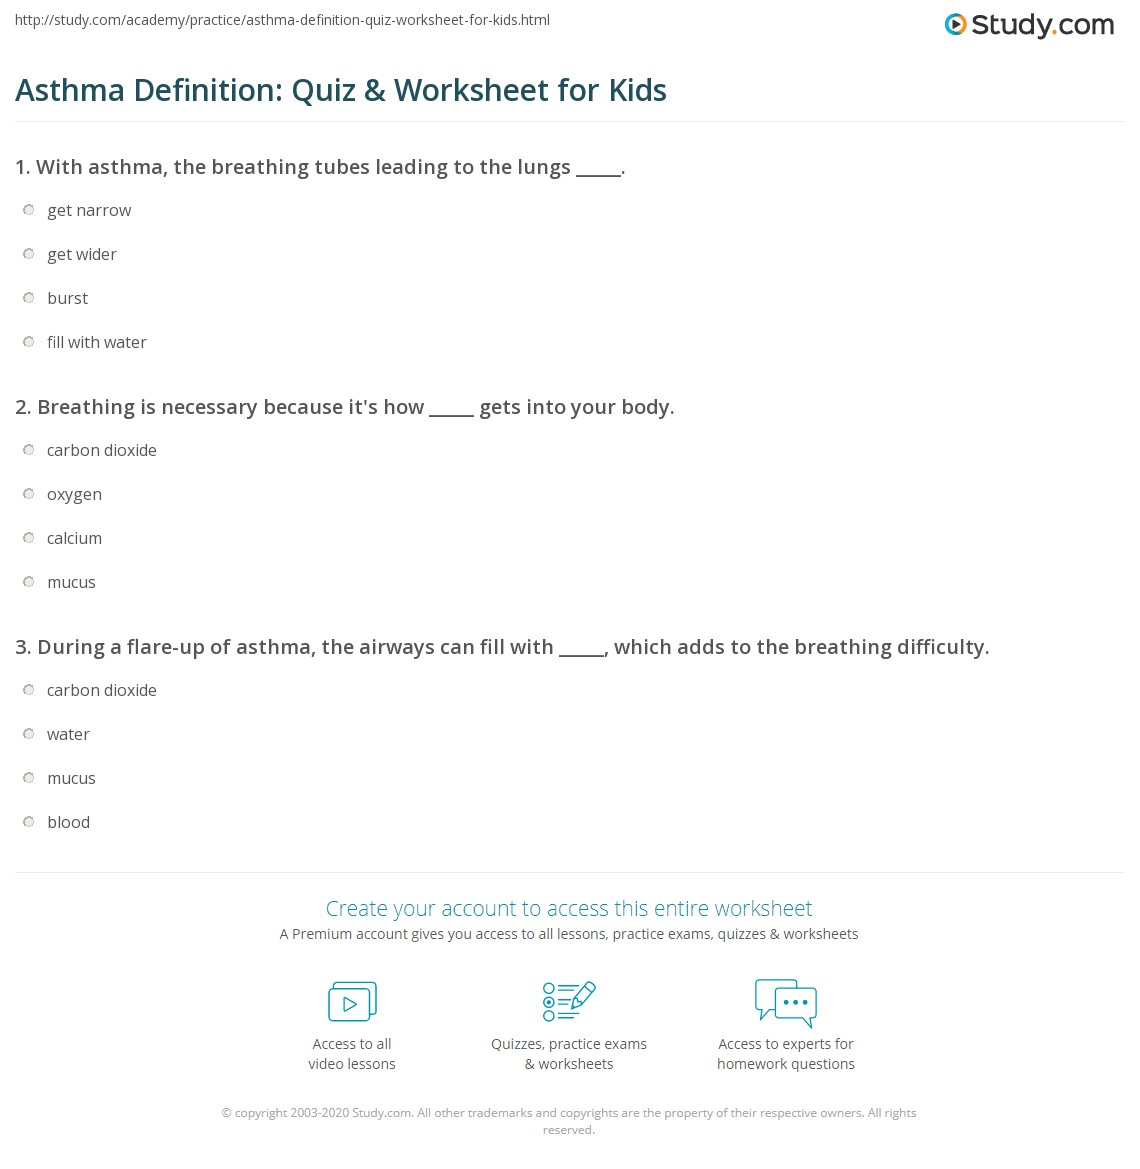 Asthma Definition Quiz Amp Worksheet For Kids